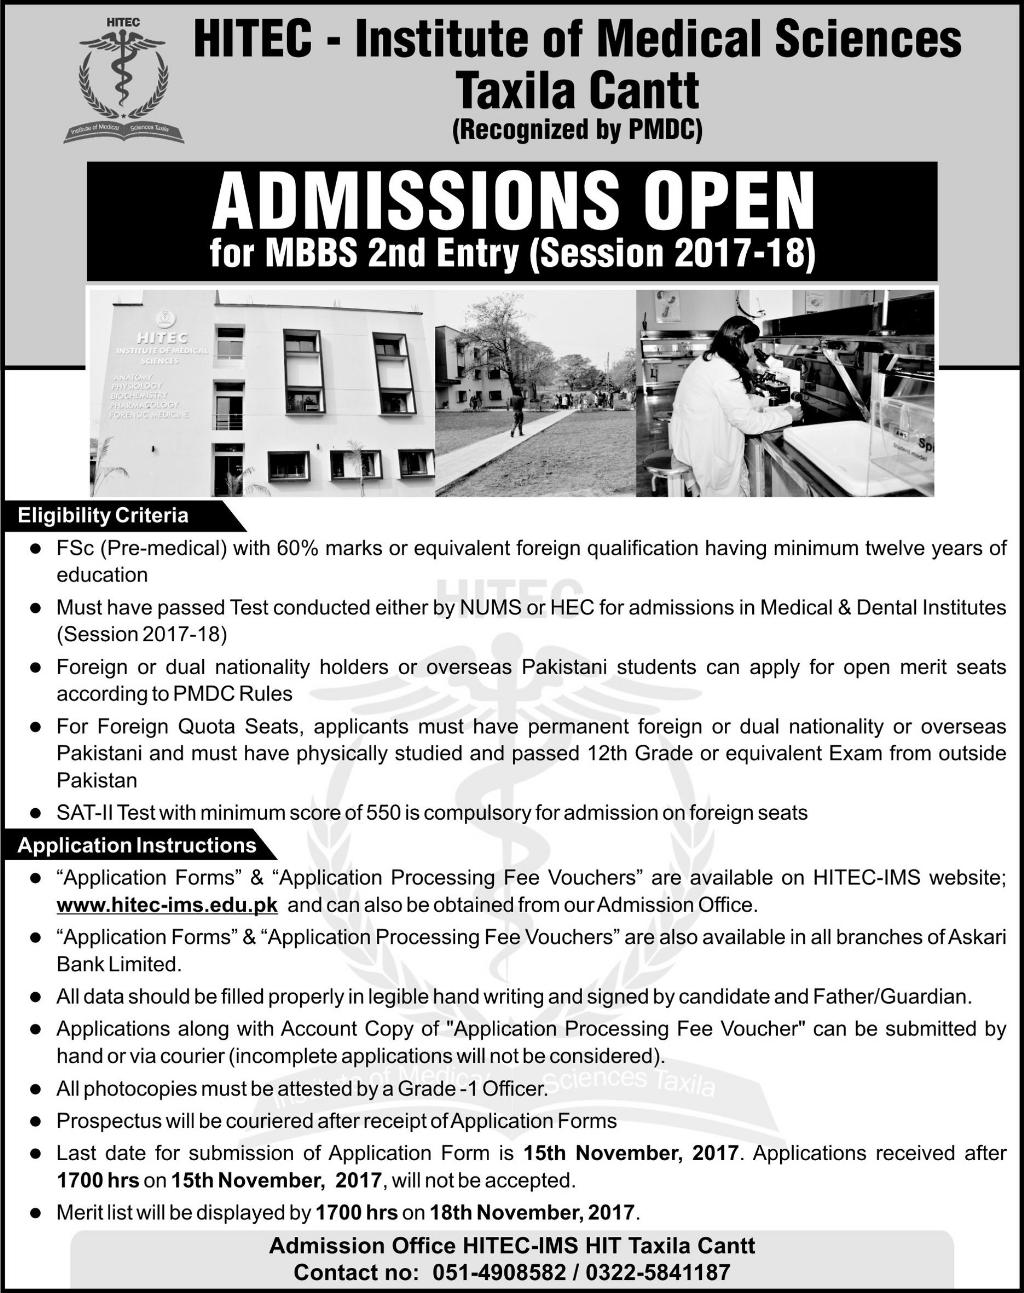 HITEC – Institute of Medical Sciences, Taxila Cantt (MBBS) Admissions 2017 – 18